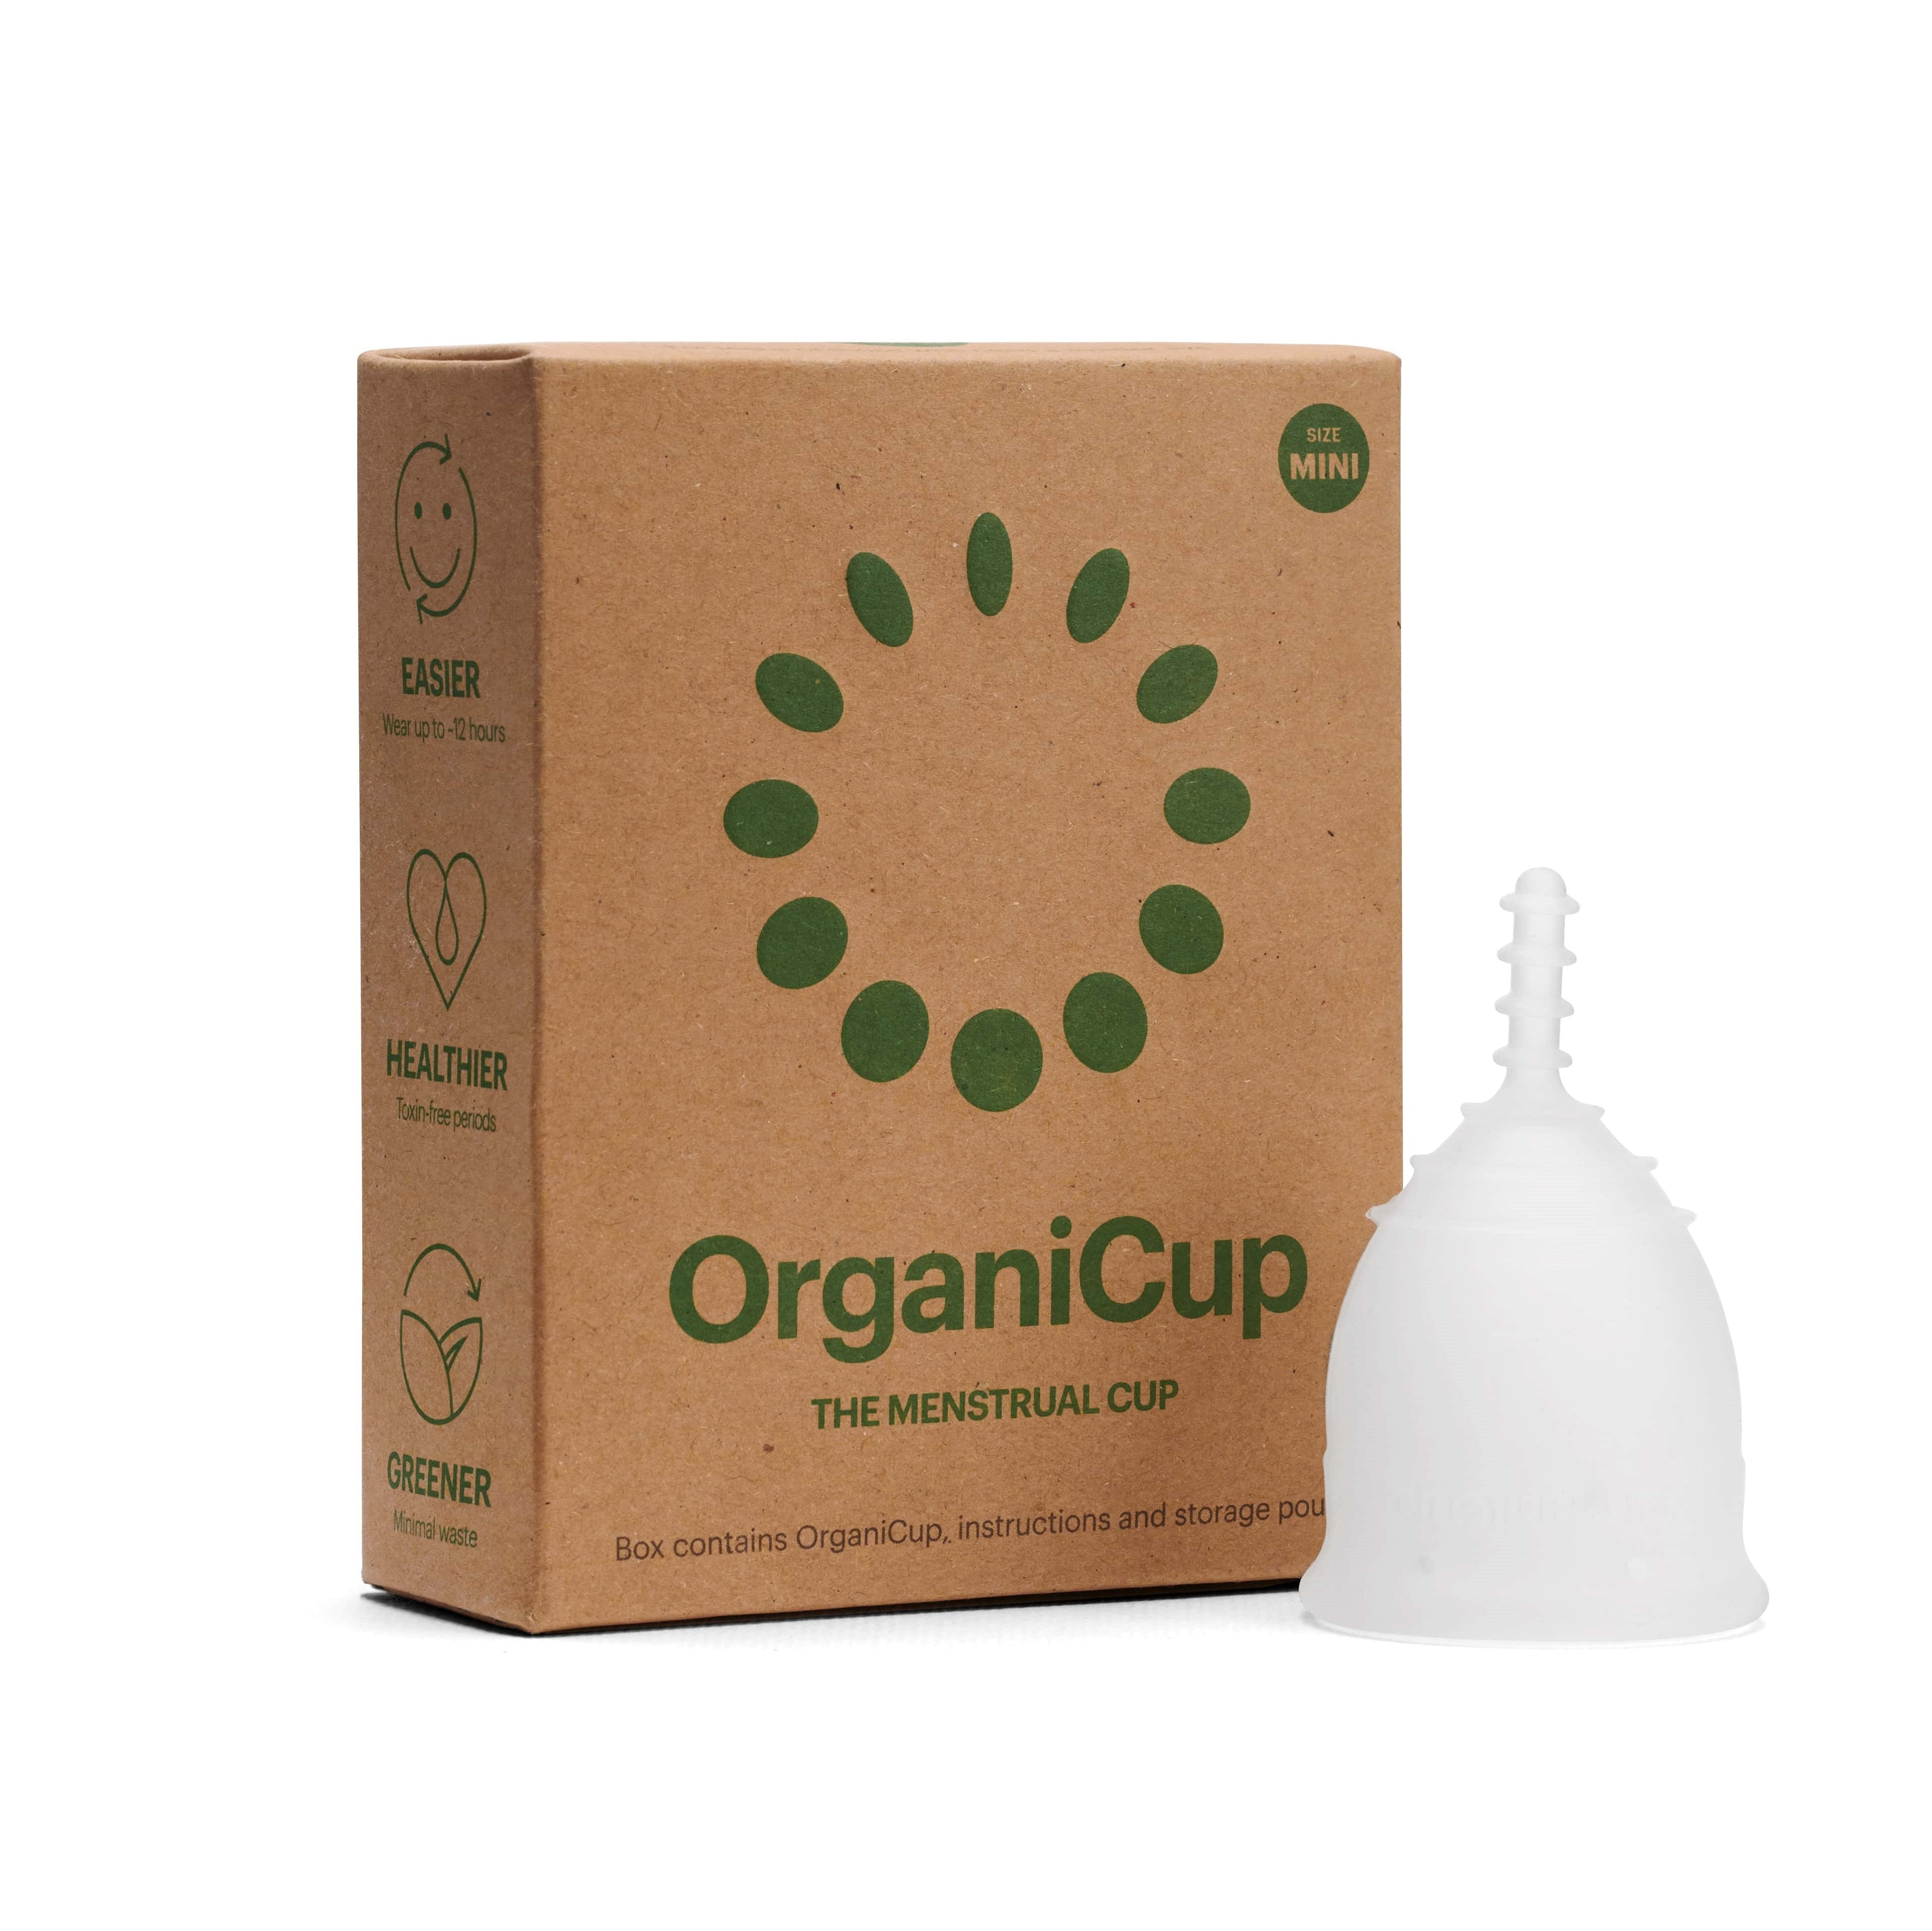 OrganiCup Menstrual Cup - Mini - The Weekly Shop | Plastic Free Online Shop